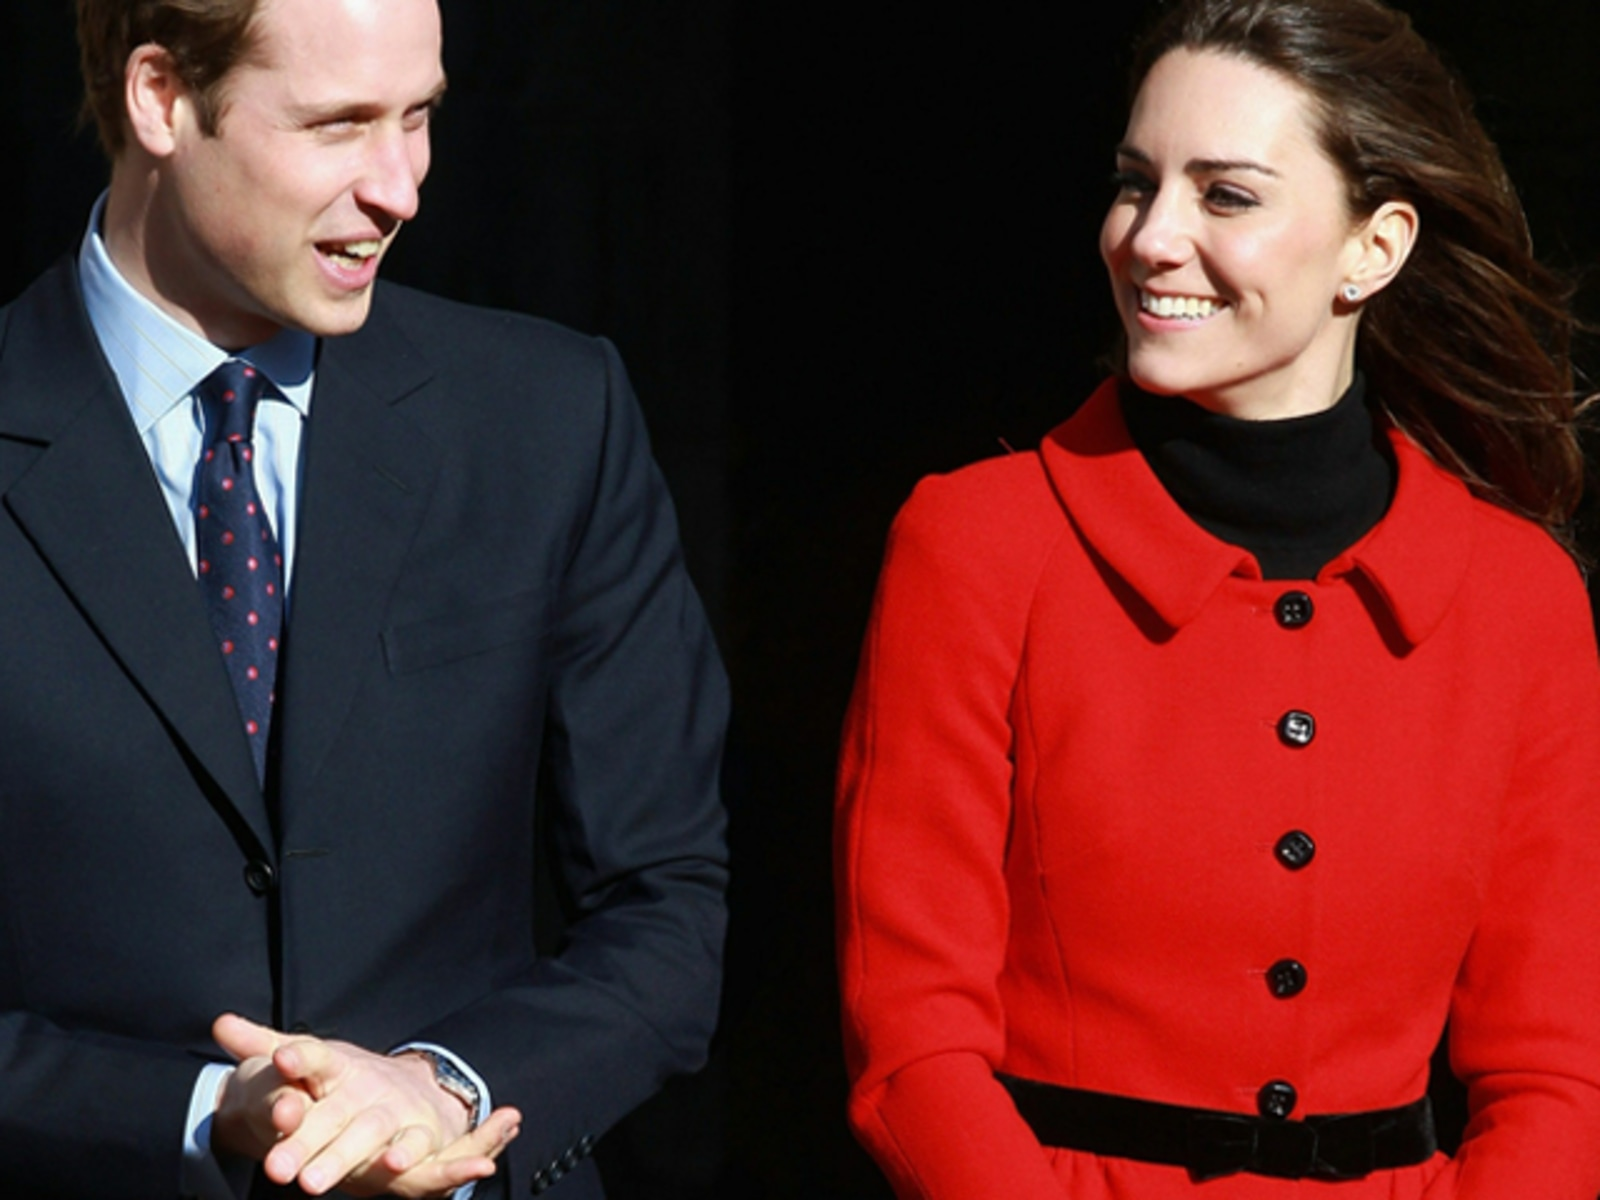 Image: Prince William And Kate Middleton Visit University Of St Andrews